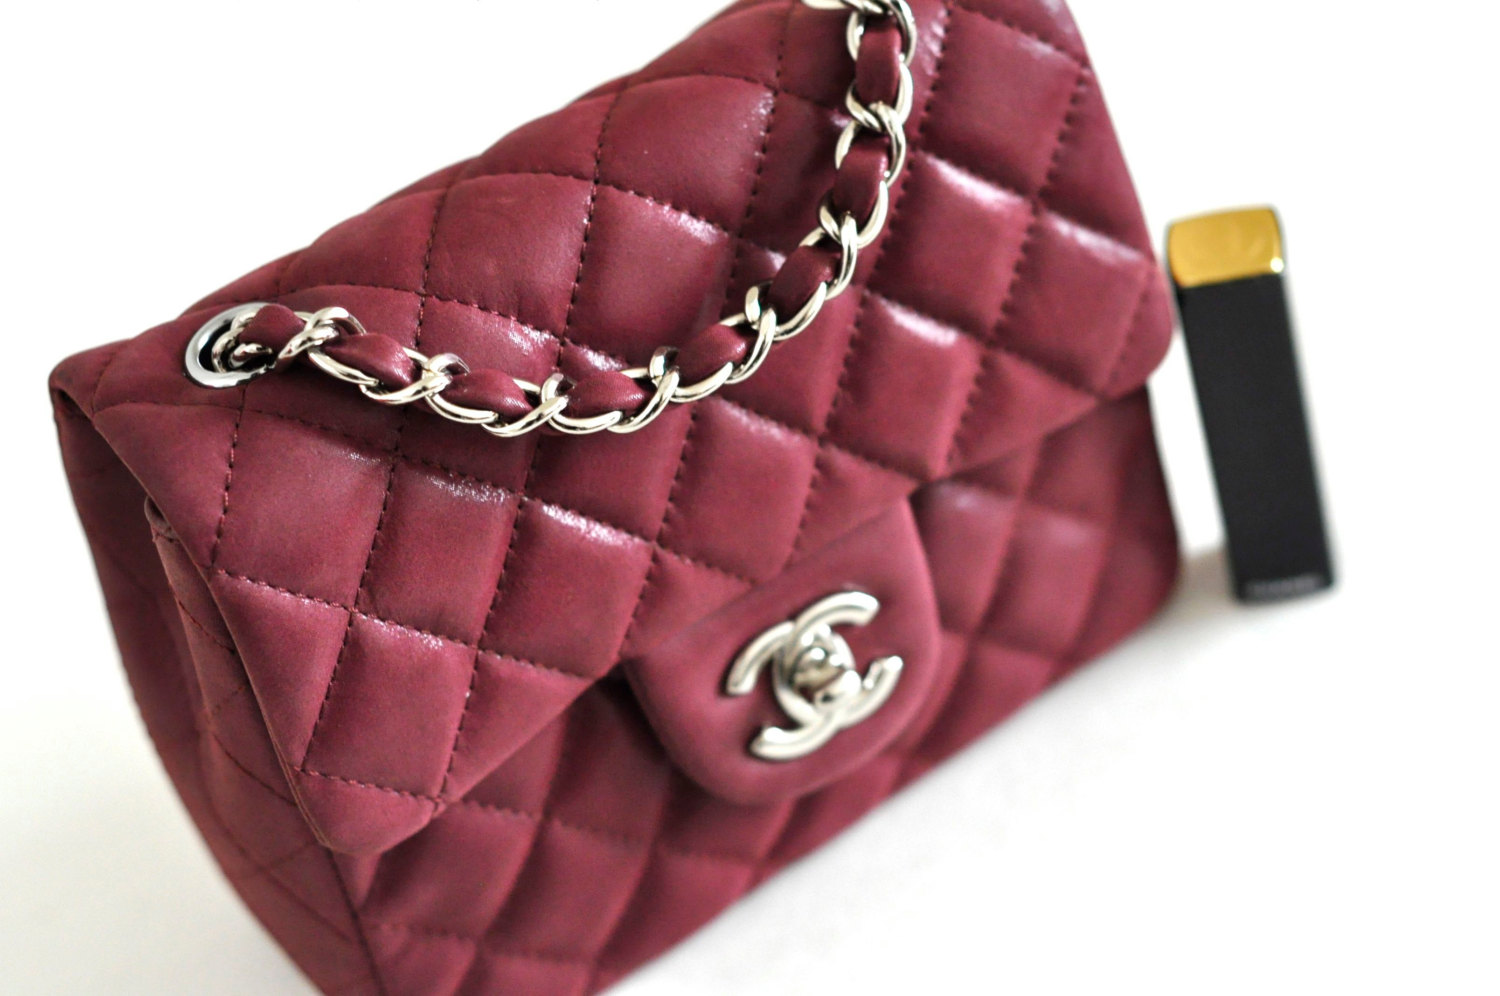 f2fdf457ebd1 ... Thumbnail 2 · Chanel Burgundy Mini Purse Red Quilted Leather Baby mini  Flap Gold Chain Purse - Thumbnail 3 ...